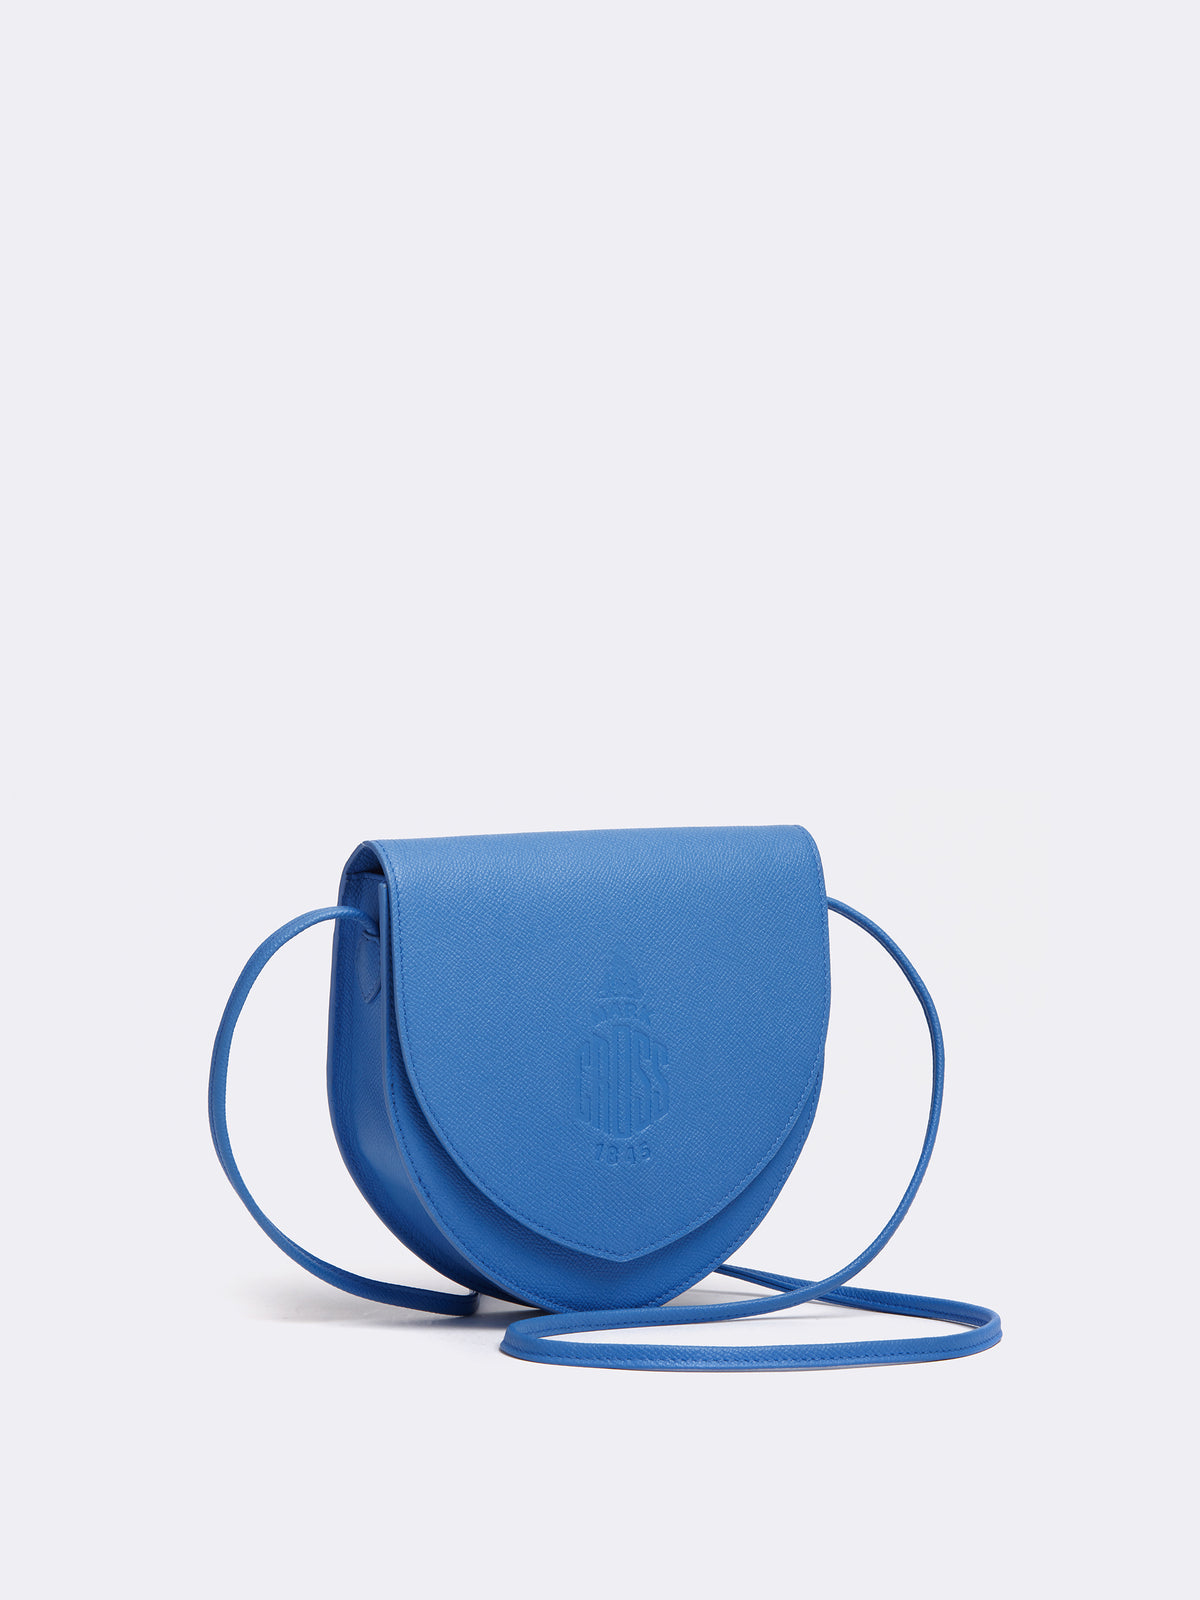 Mark Cross Dunes Leather Crossbody Bag Regatta Blue Side